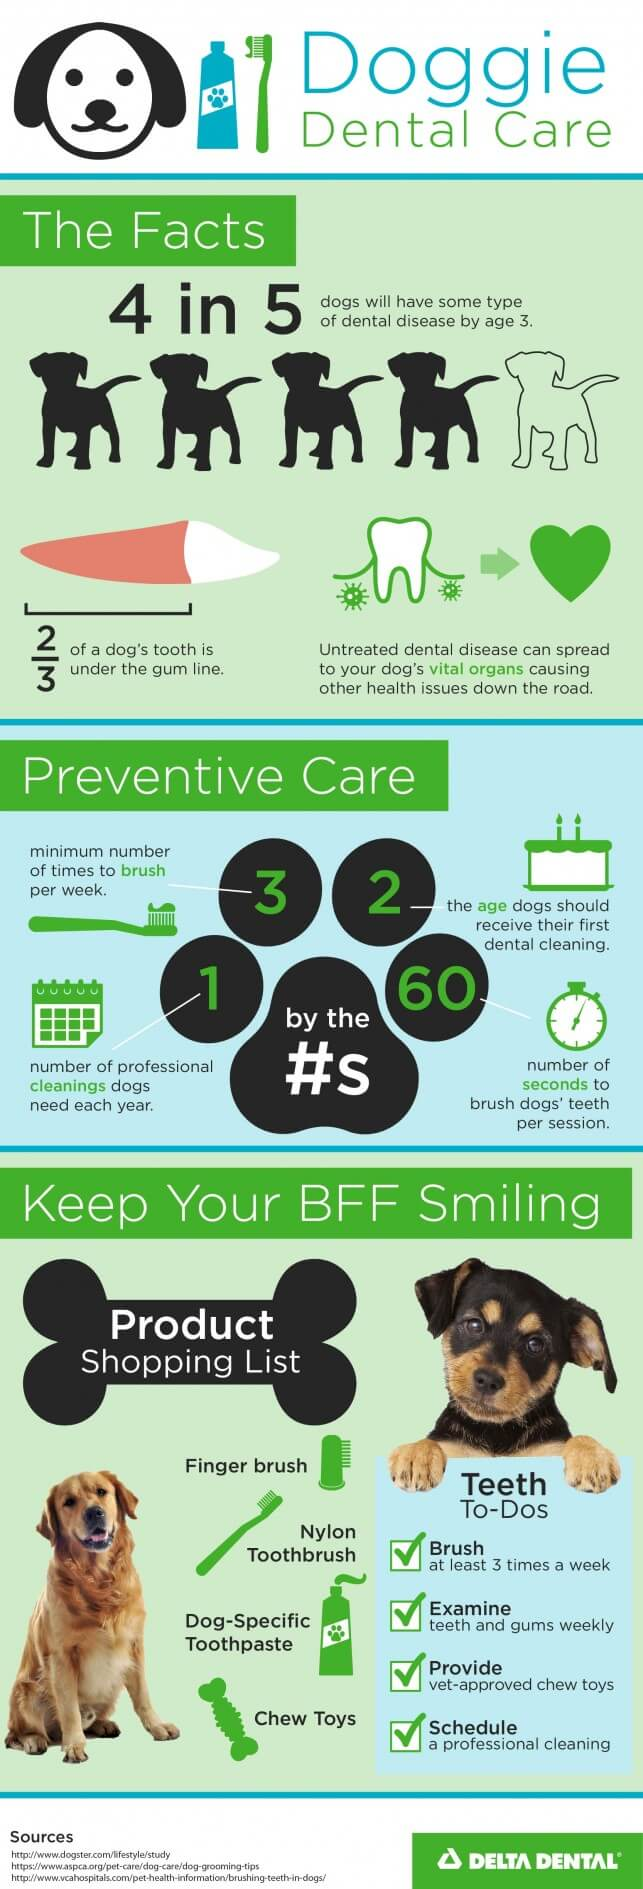 5627 Dog Teeth Infographic_F